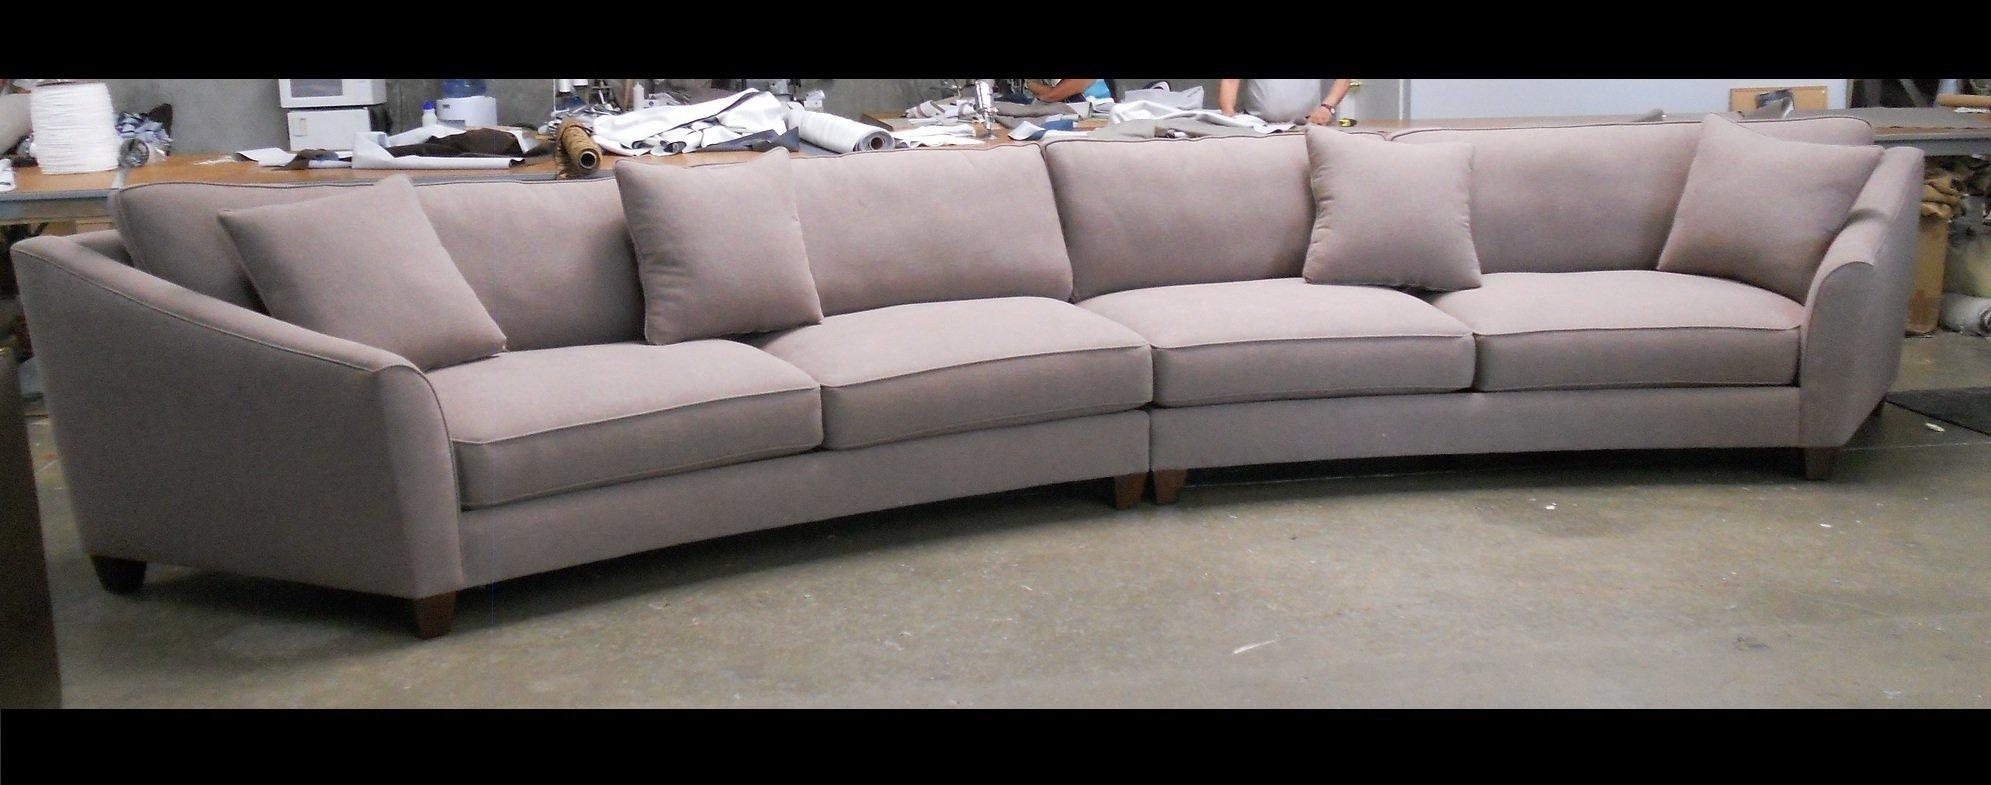 Furniture: Circular Sectional Sofa Sale With Curved Couches Pertaining To Semi Circular Sectional Sofas (View 8 of 20)